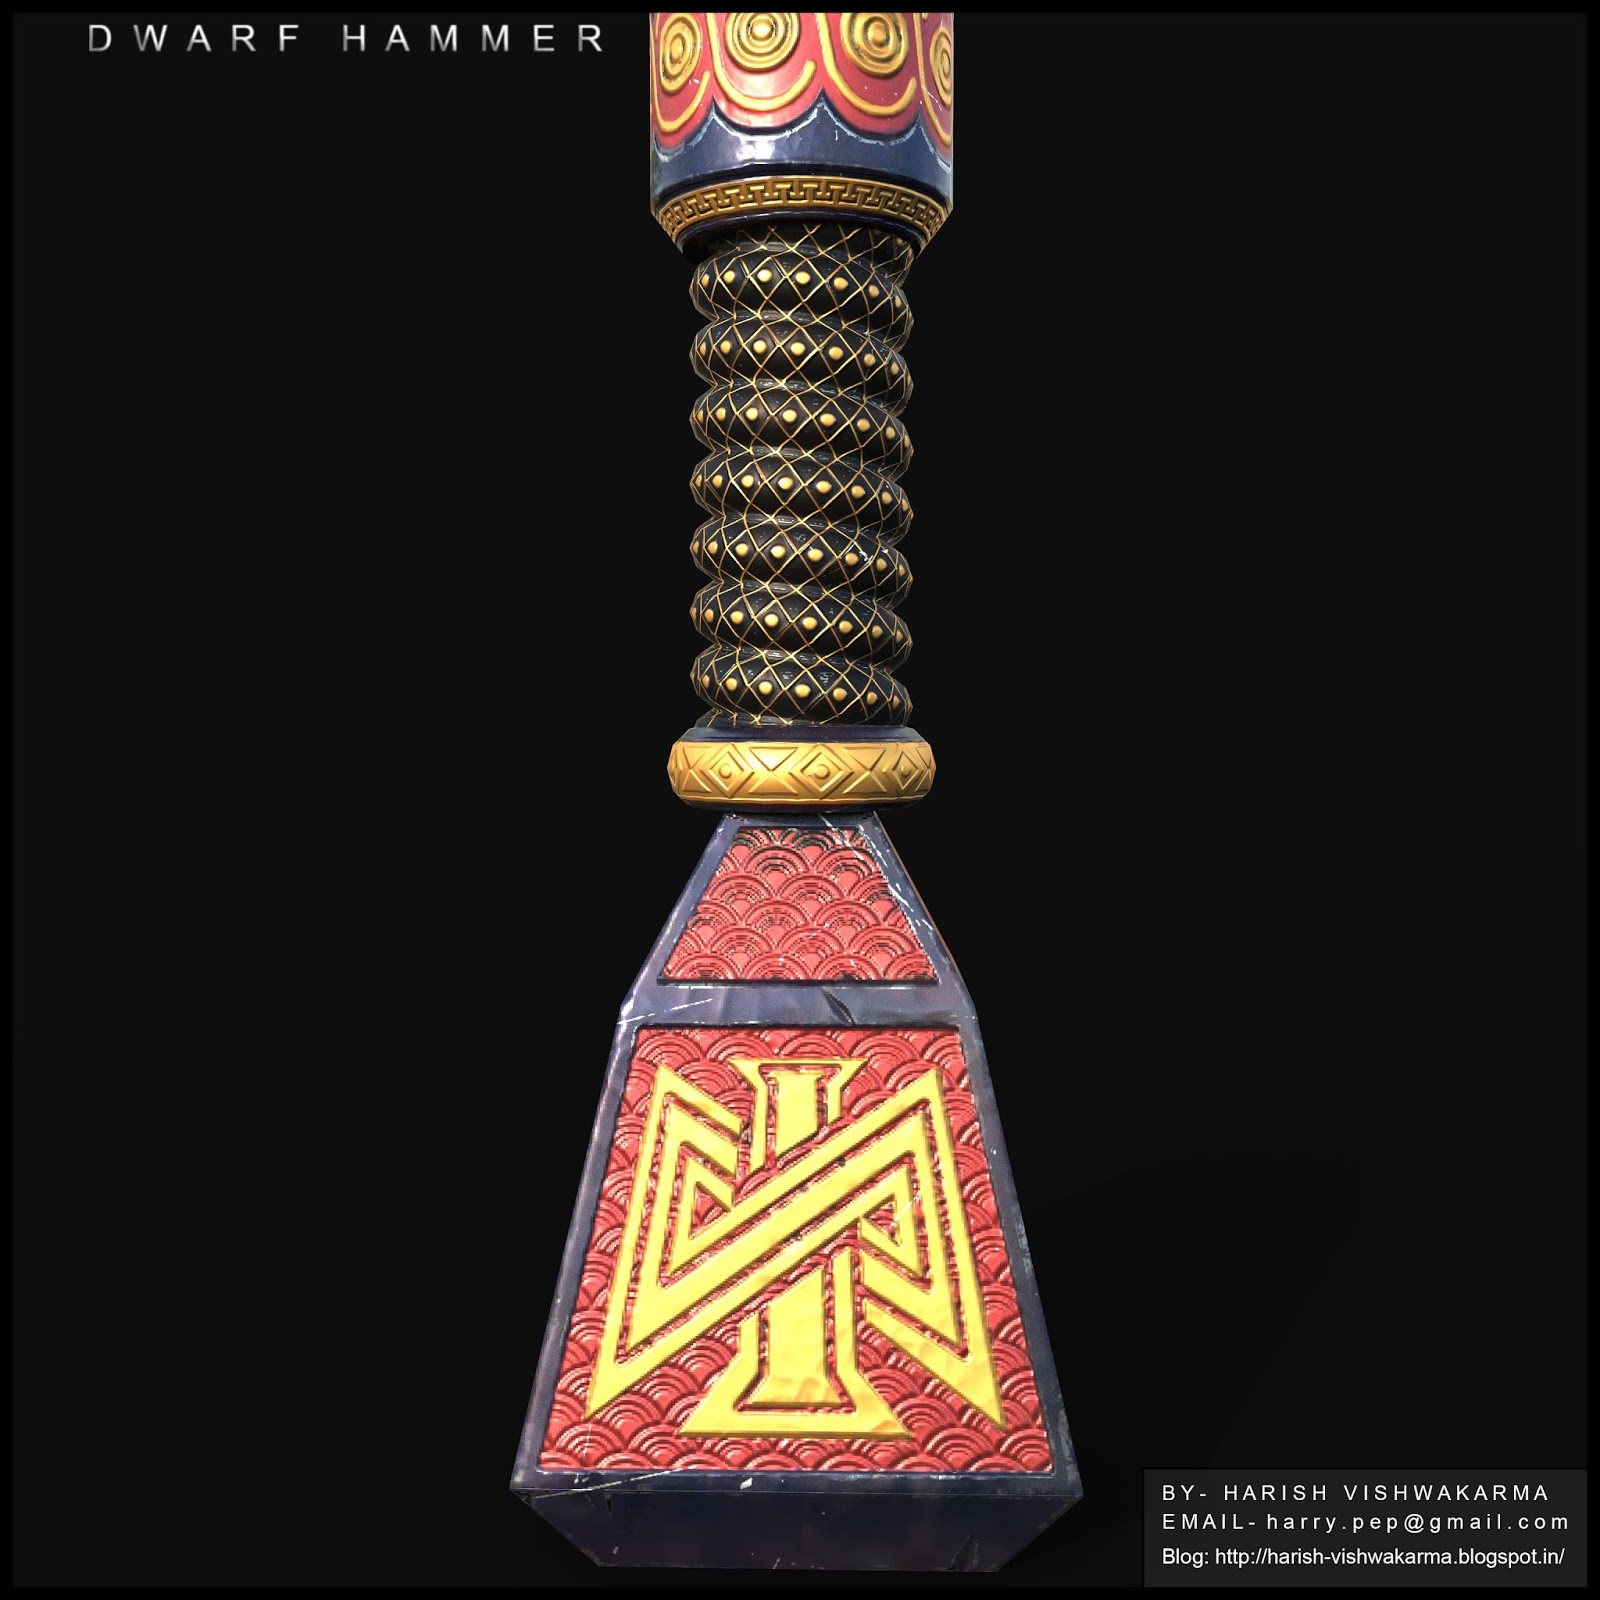 DWARF_HAMMER_RENDER_FINAL_05.jpg